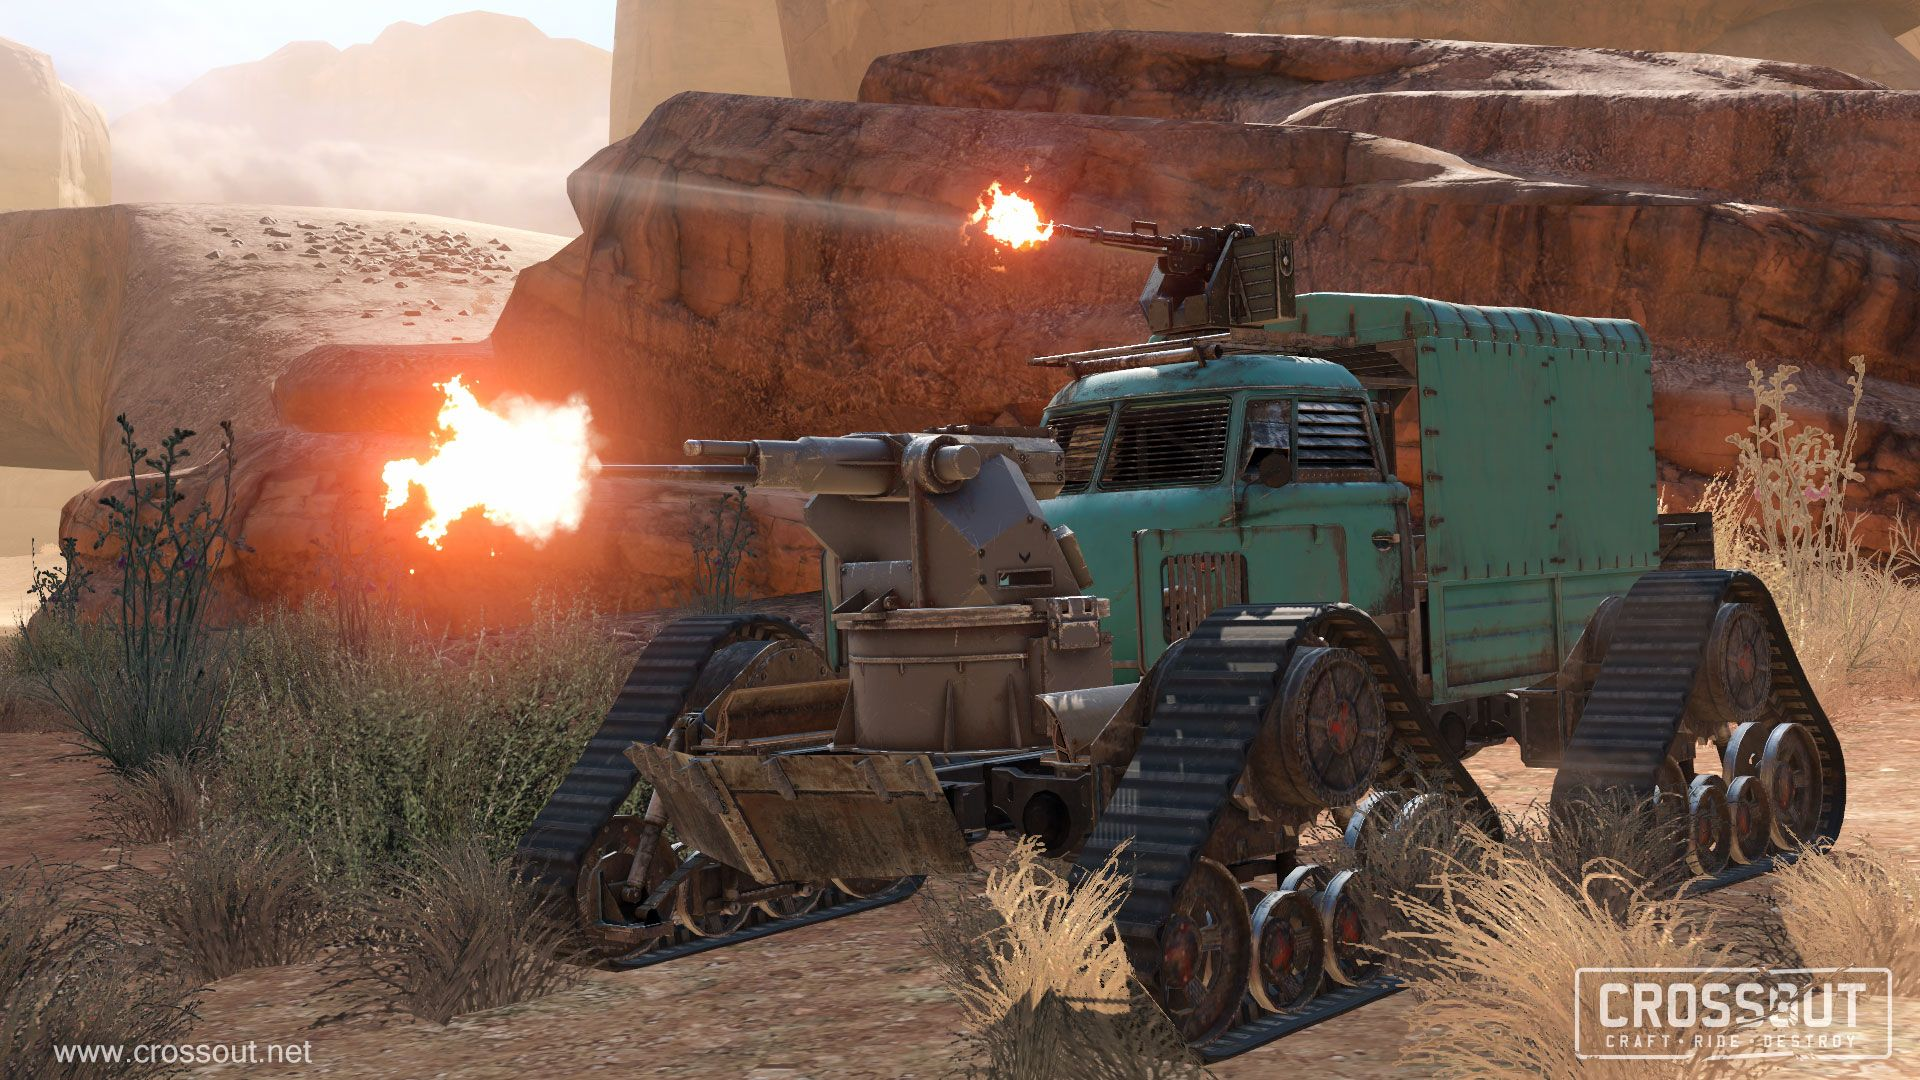 crossout sur steam